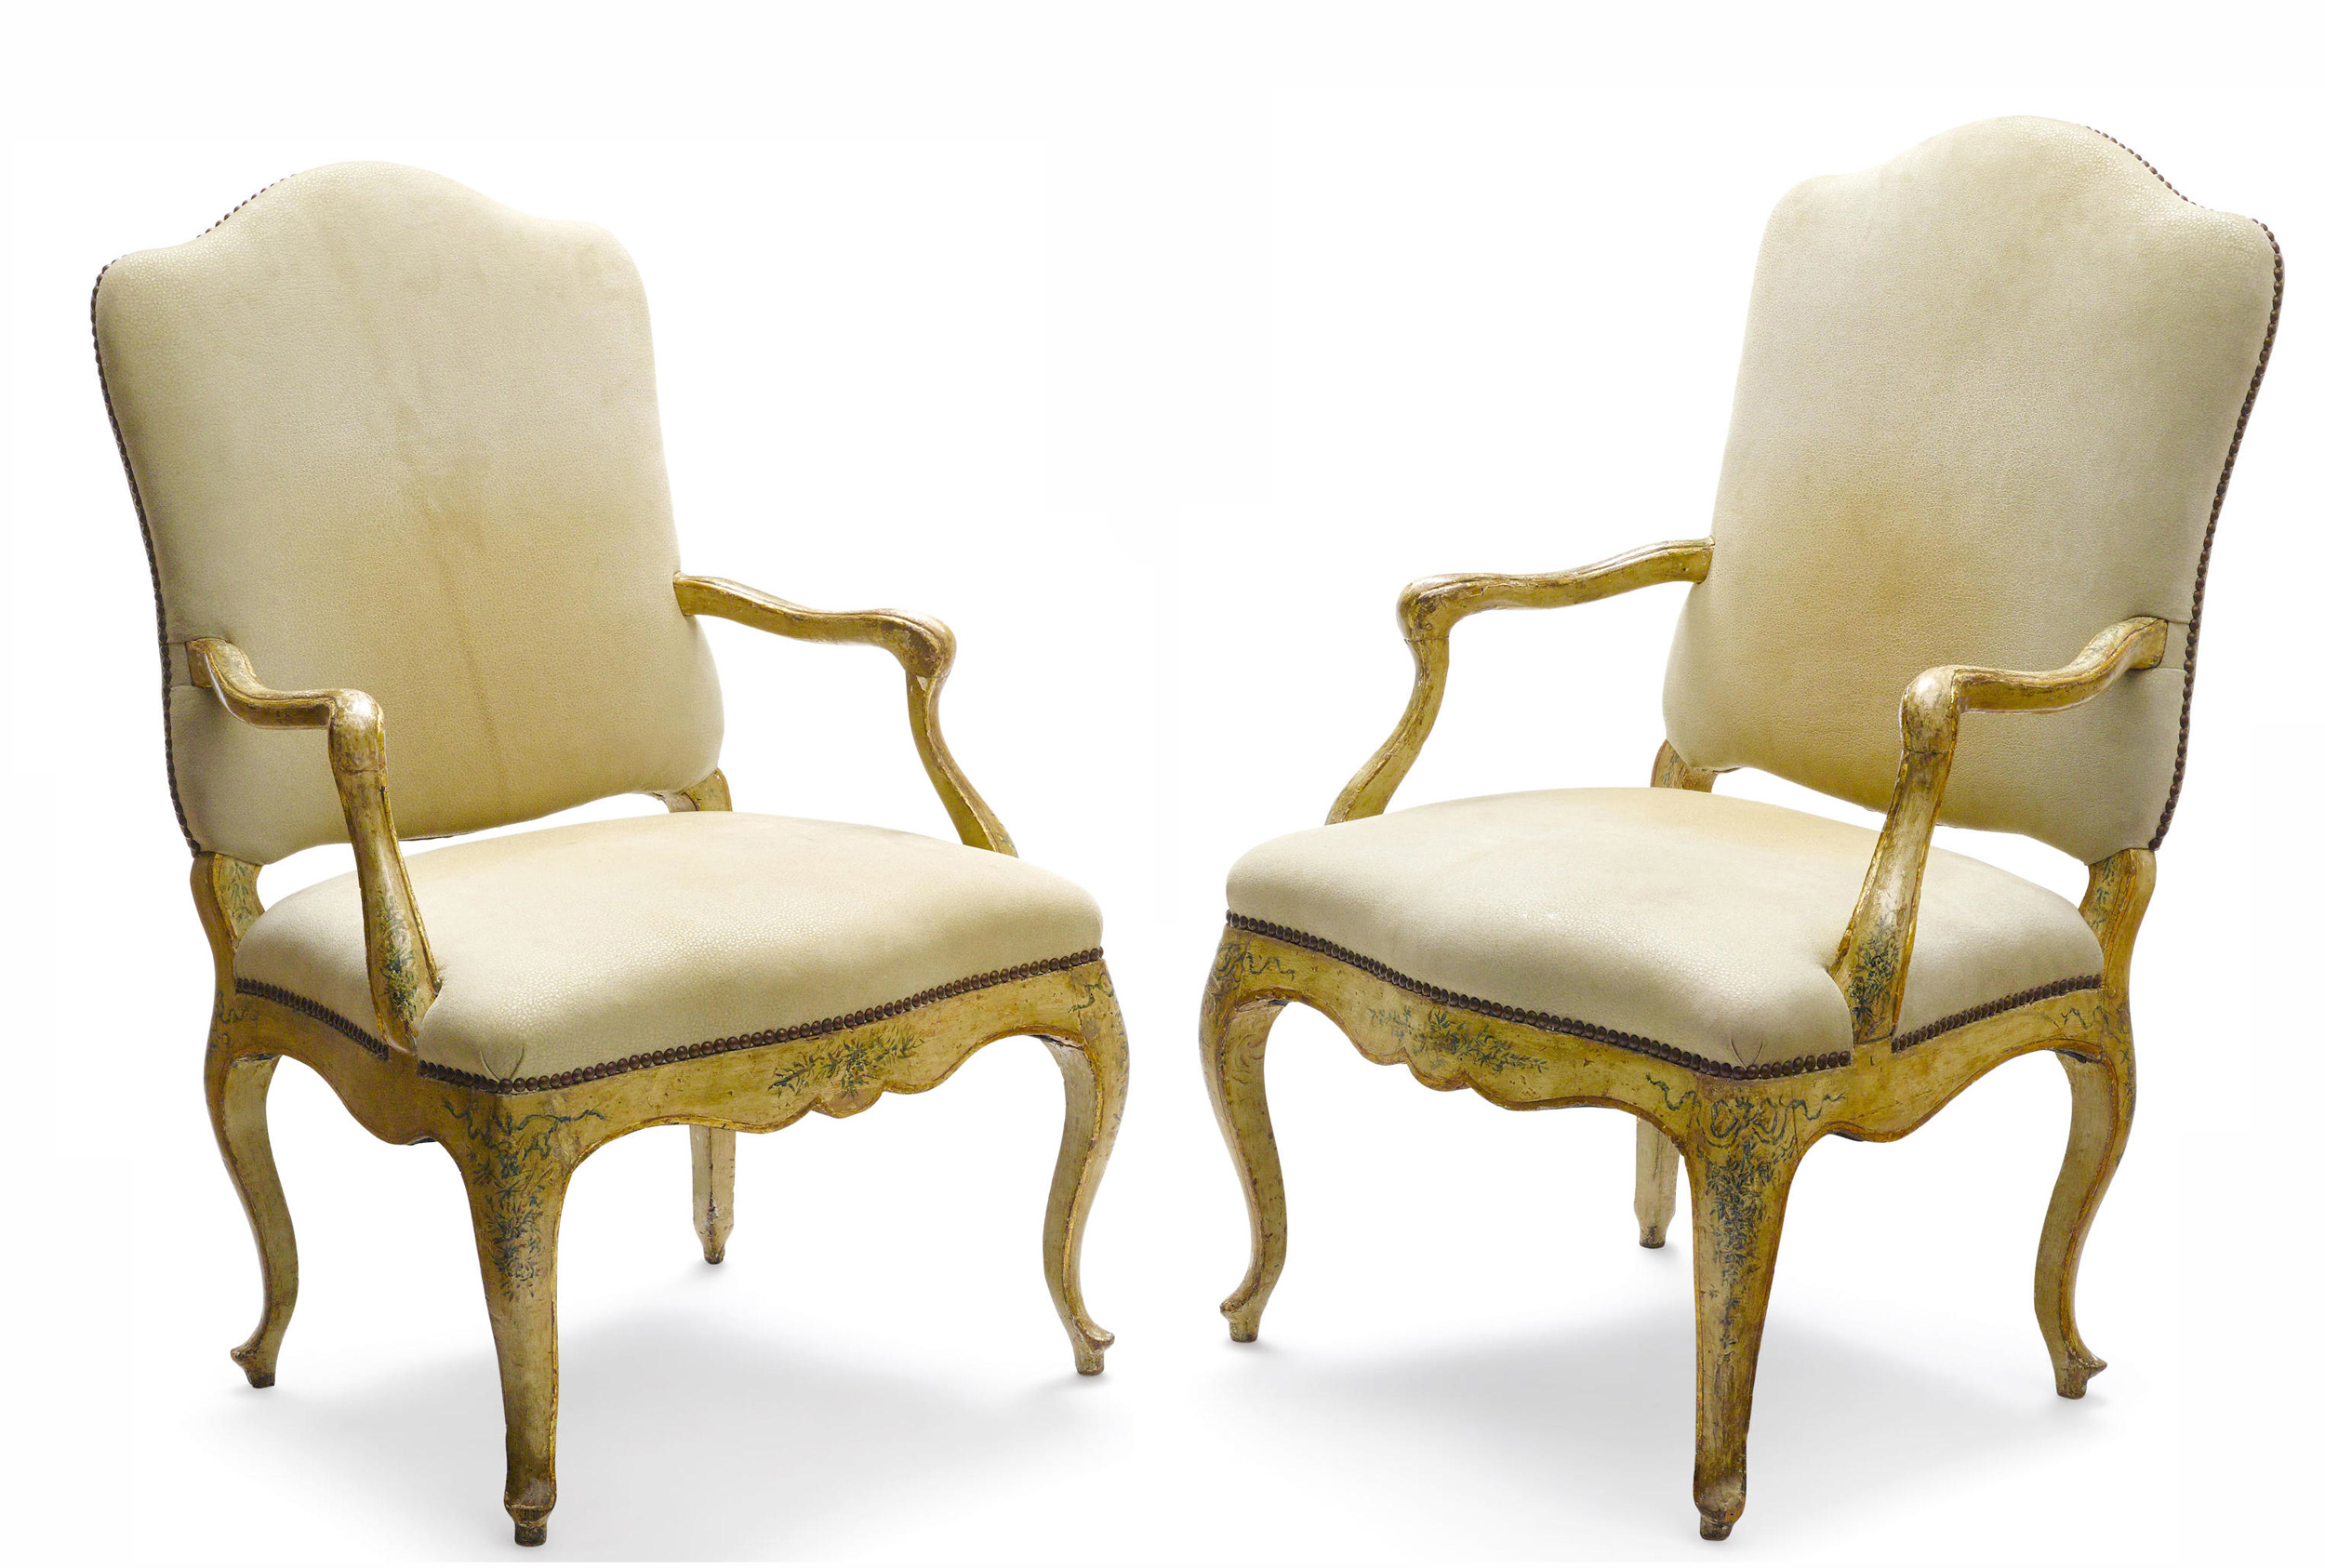 Large and Fine Italian Rococo Parcel Gilt and Painted Armchairs…<s>$18,000</s> / <b>$8,000</b>